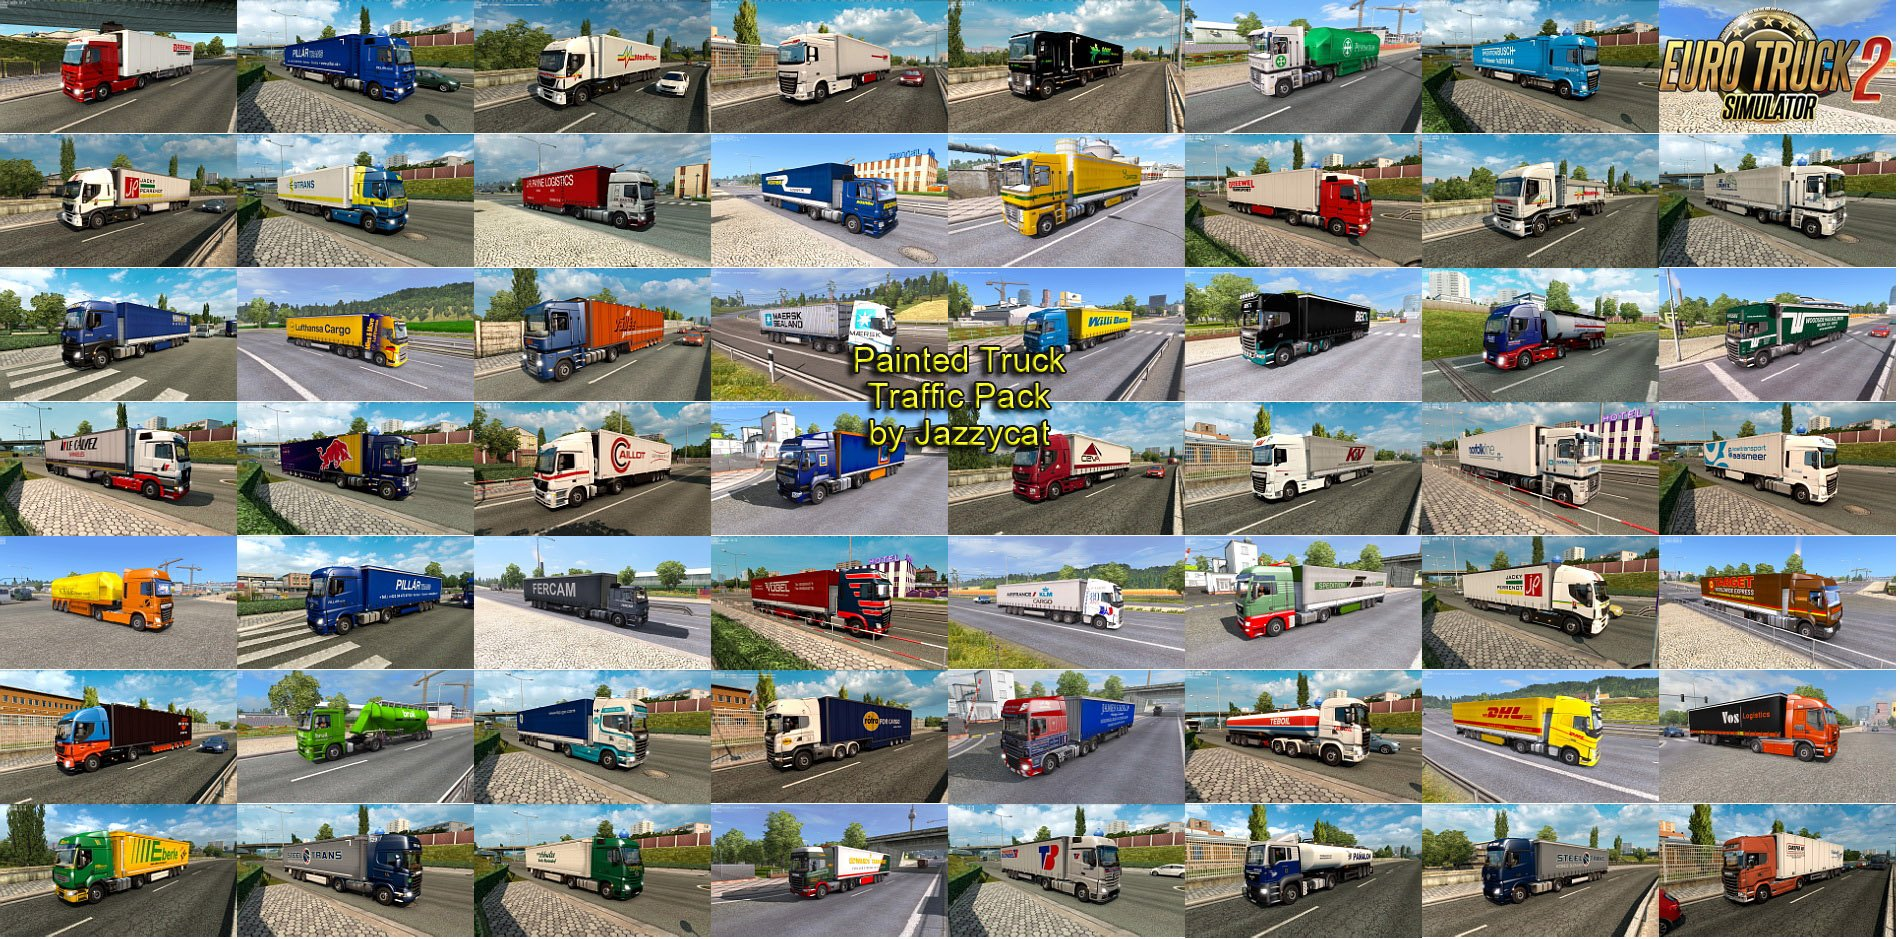 Painted Truck Traffic Pack v3.5 by Jazzycat